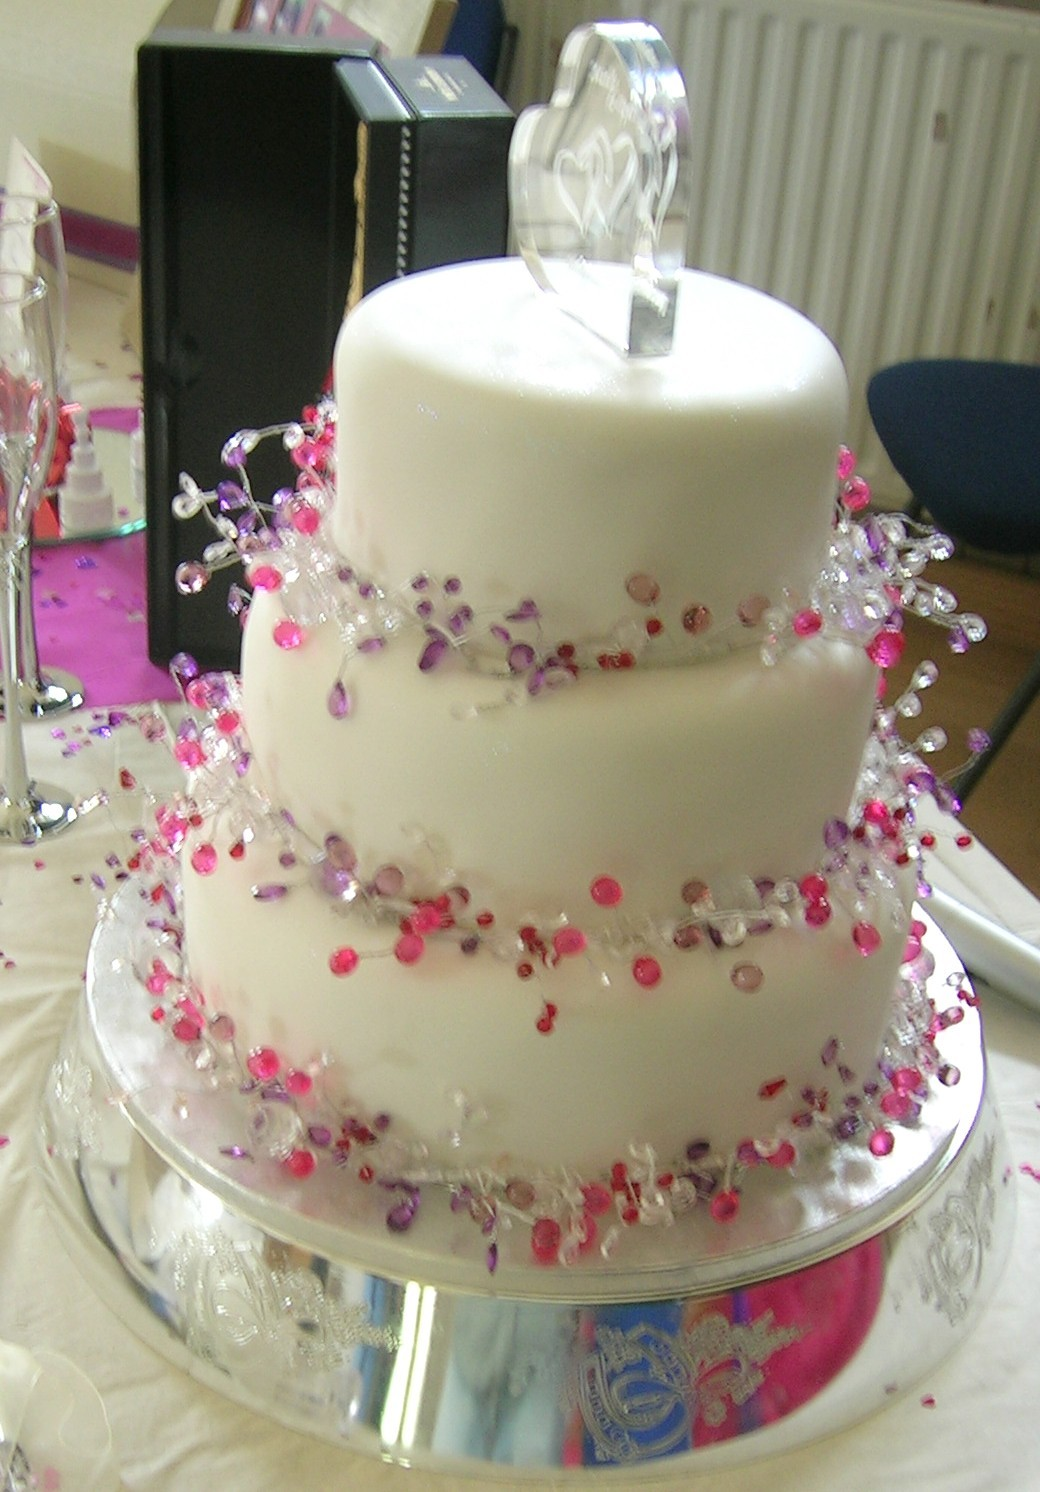 Cake Ideas For Small Wedding : Wedding Pictures Wedding Photos: Wedding Cake Decorating ...